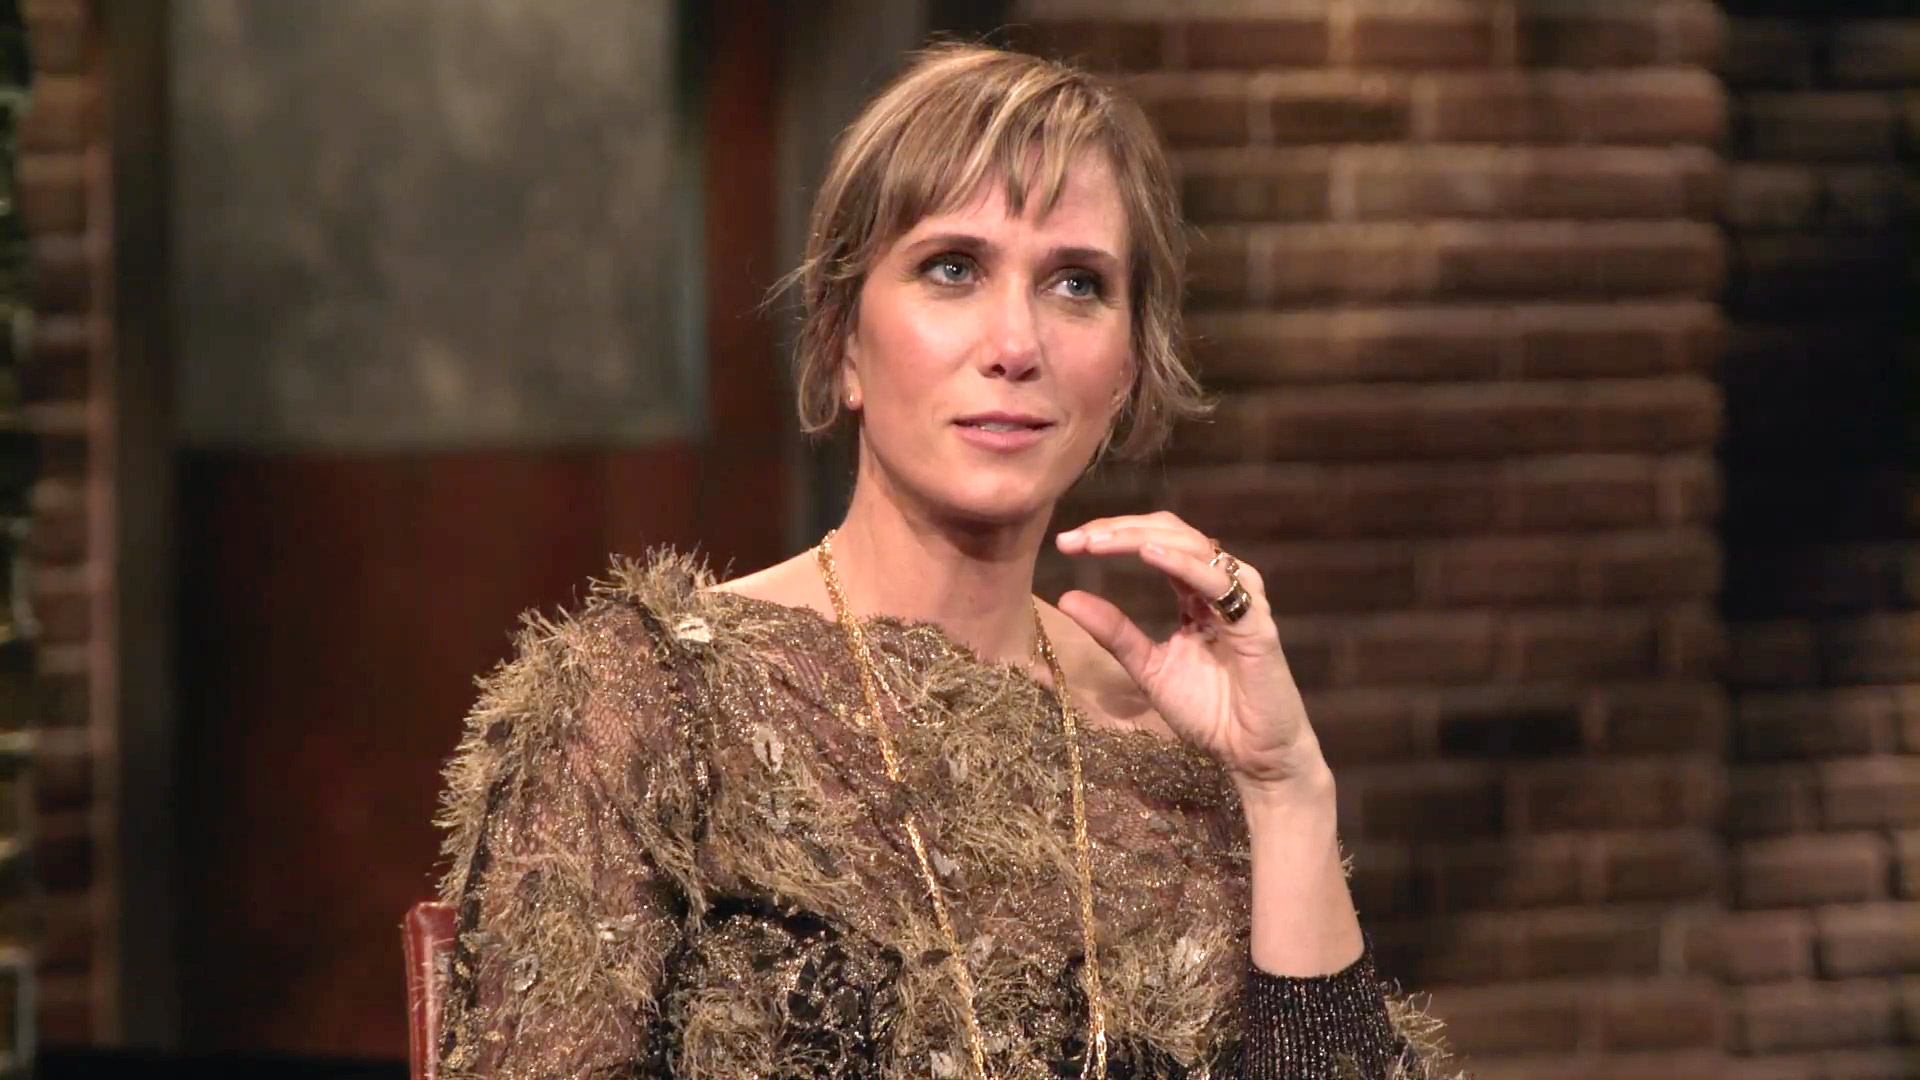 Kristen Wiig on Working with the Bridesmaids Cast